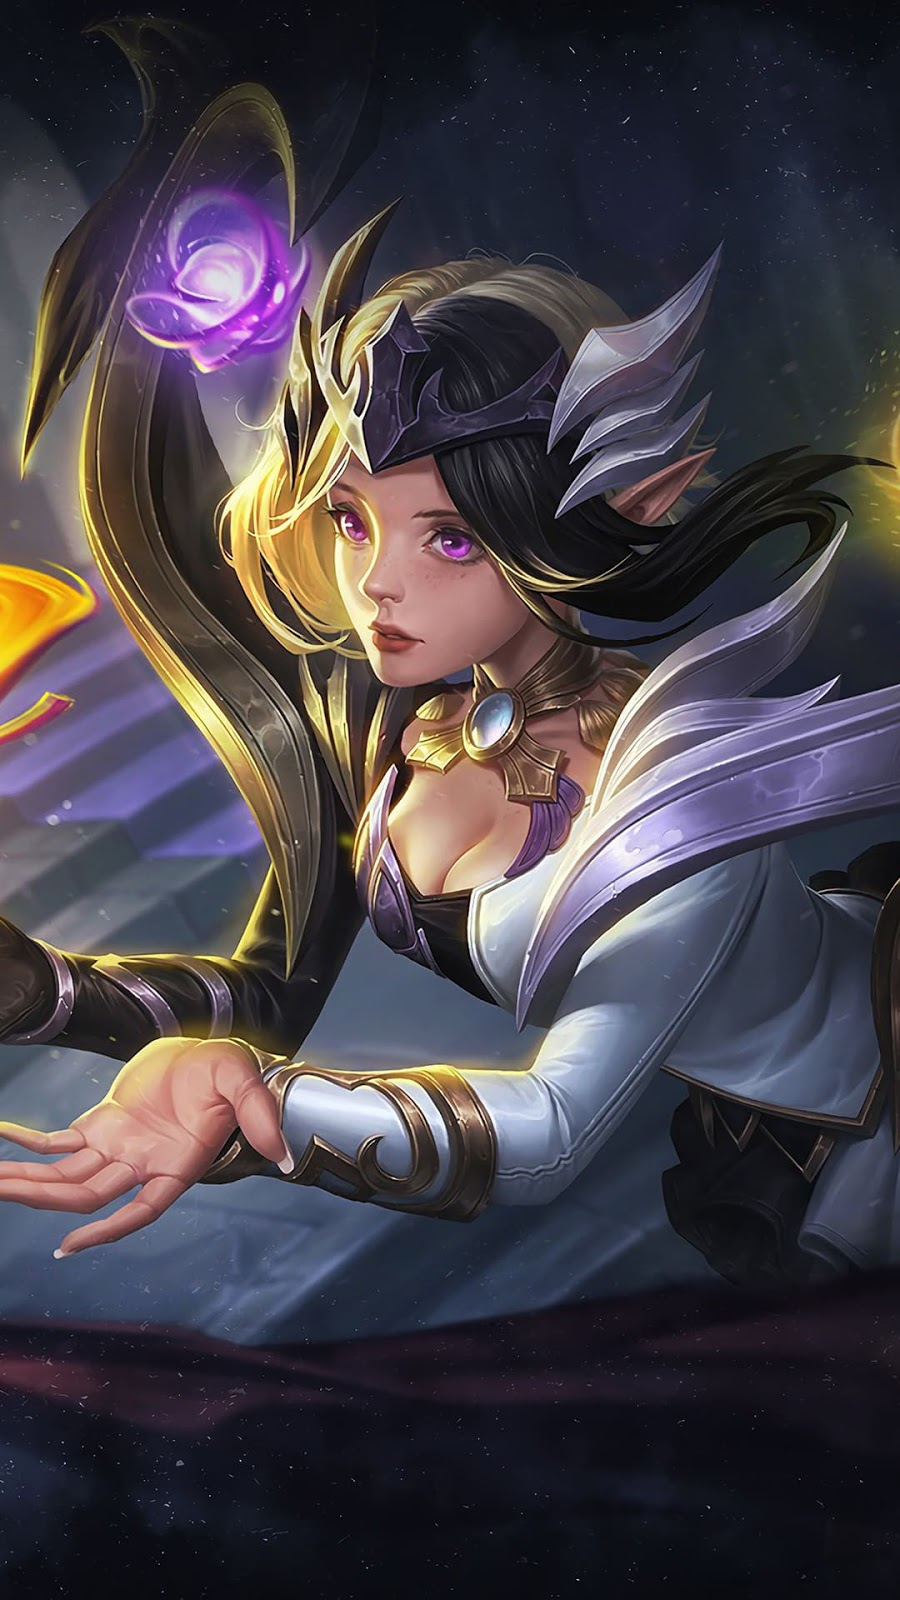 Wallpaper Lunox Twilight Goddes Skin Mobile Legends Full HD for Android and iOS